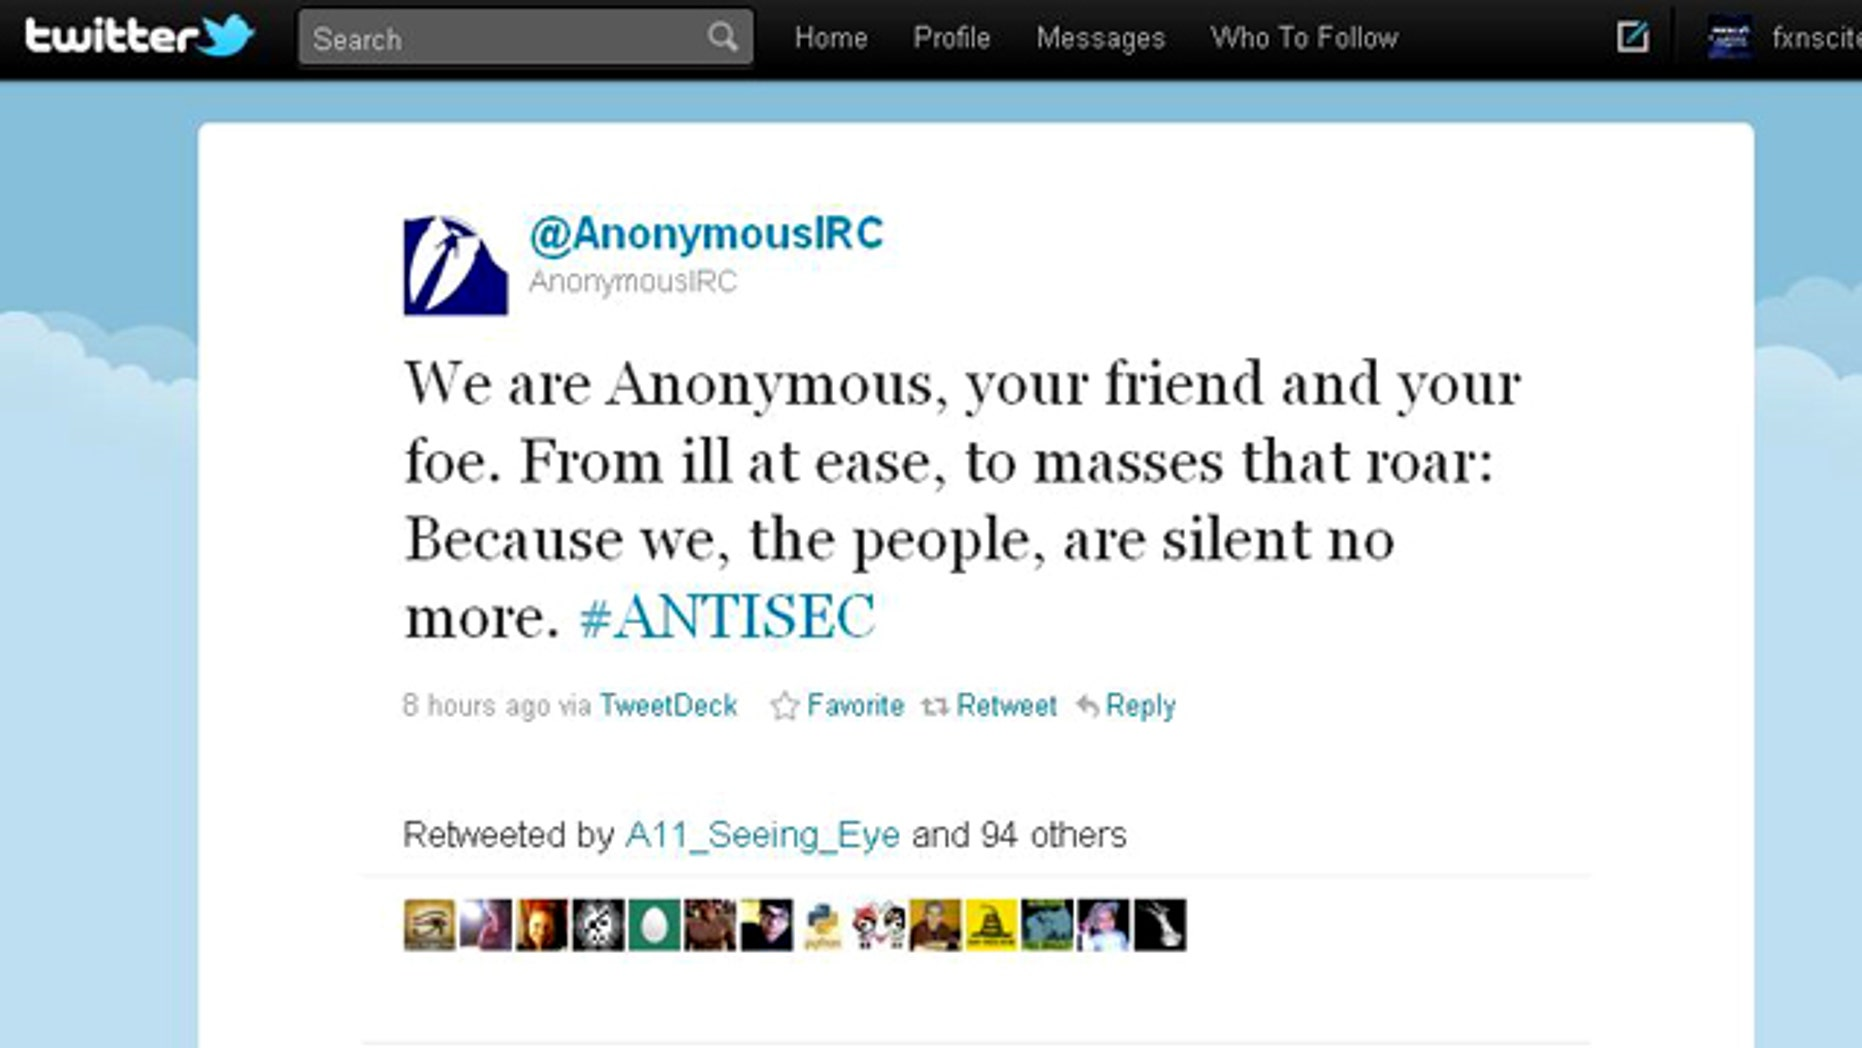 A screenshot of the @AnonymousIRC Twitter feed, one of many associated with the anonymous hacker group responsible for hacking and defacing numerous sites in recent weeks.